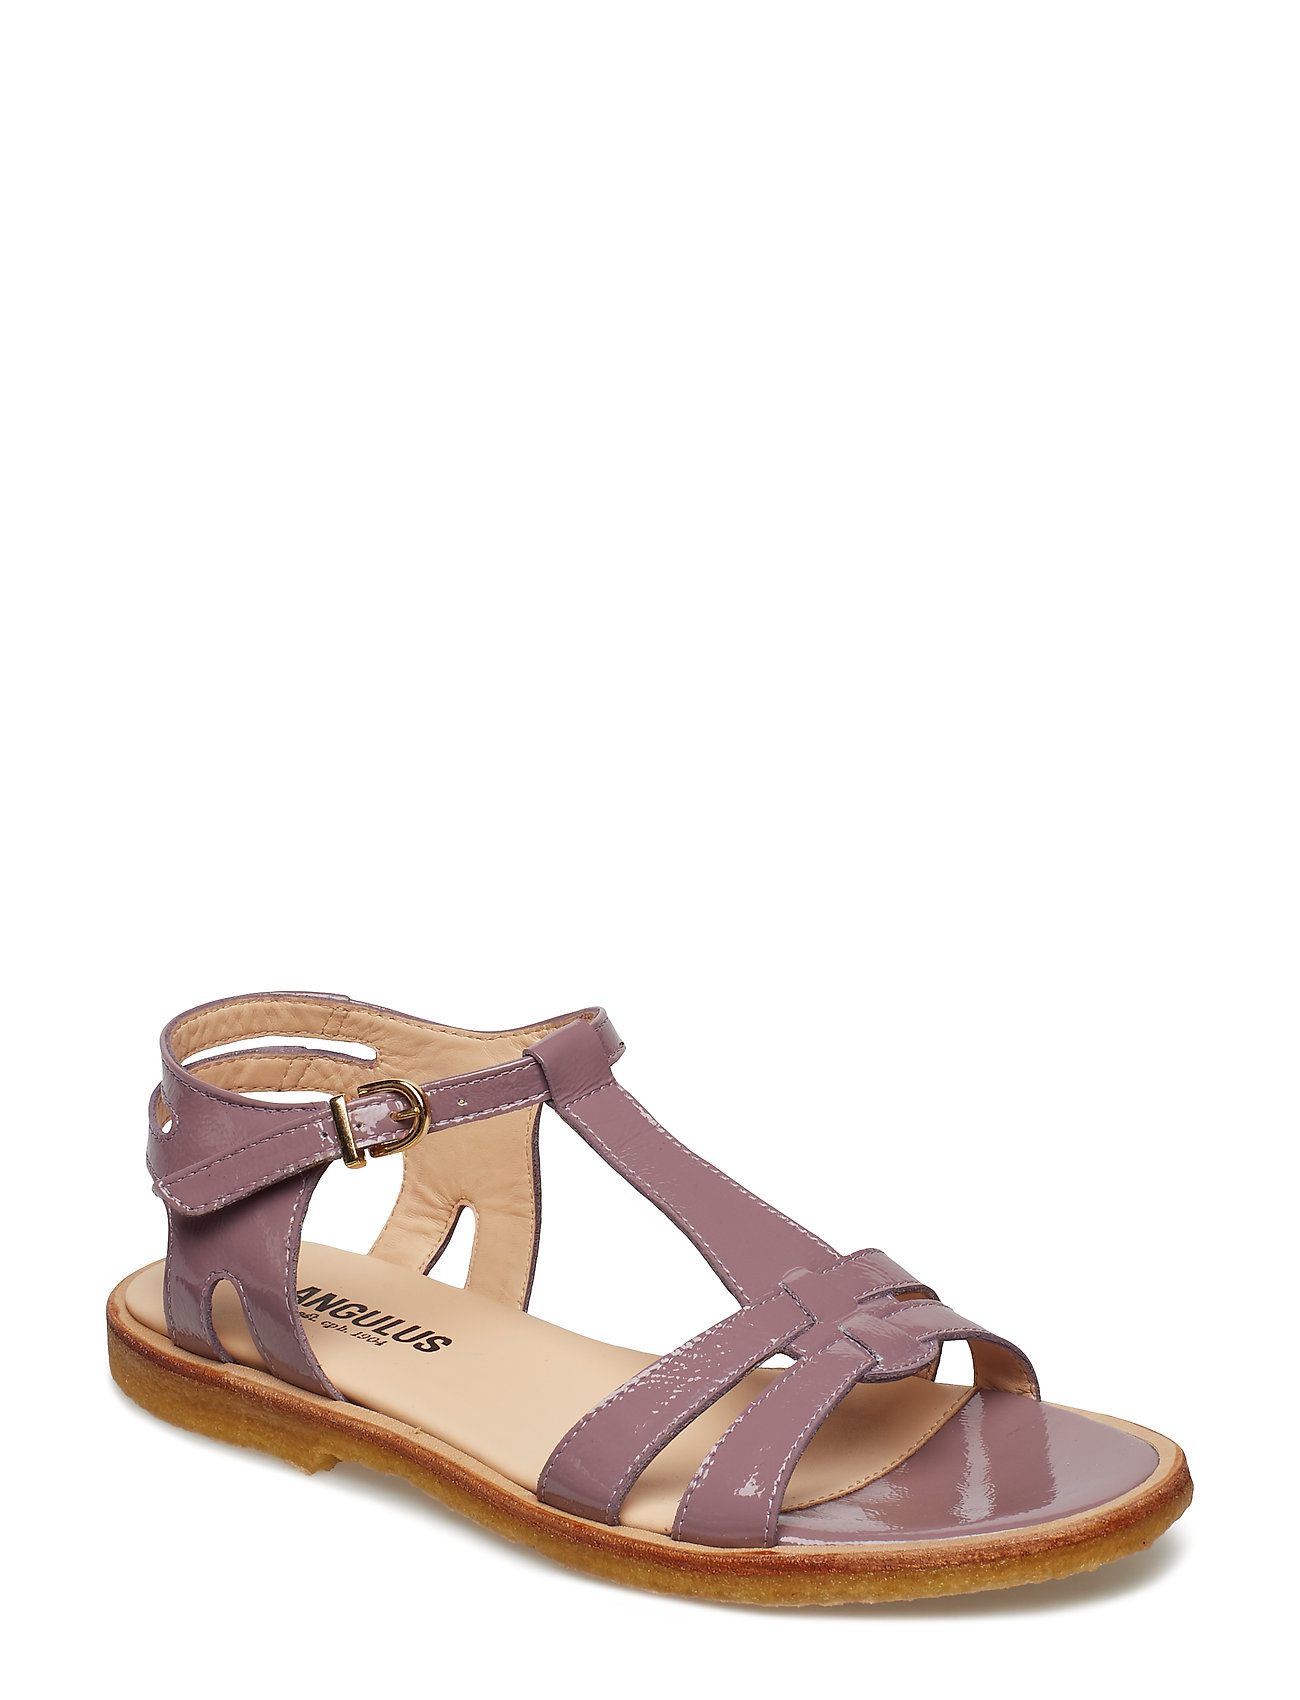 ANGULUS Sandal with leather sole - 1391 DUSTY FUCHSIA